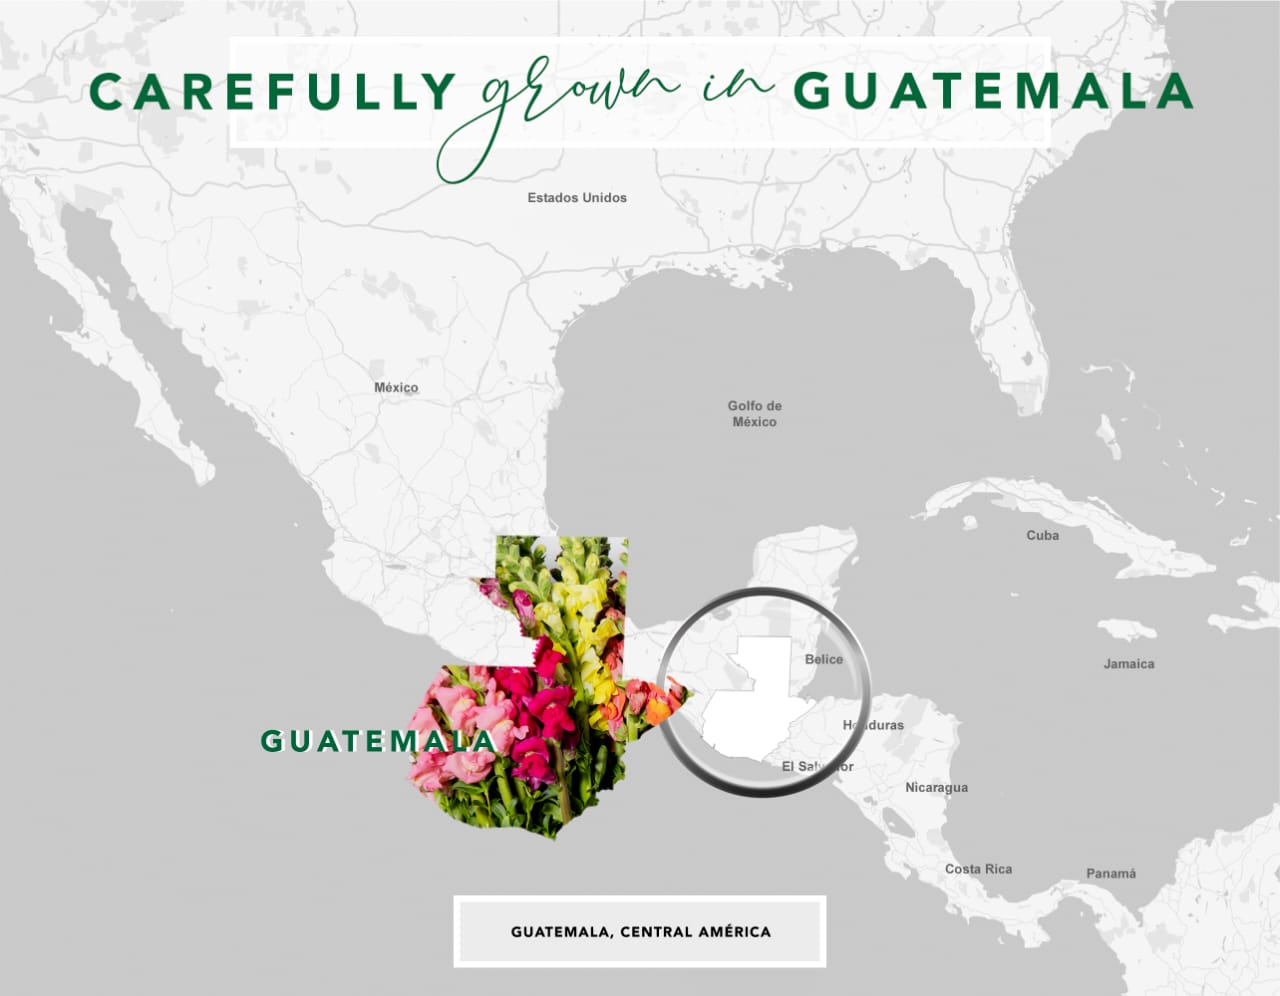 We deliver and shipping to North America and Central America, carefully grown in Guatemala